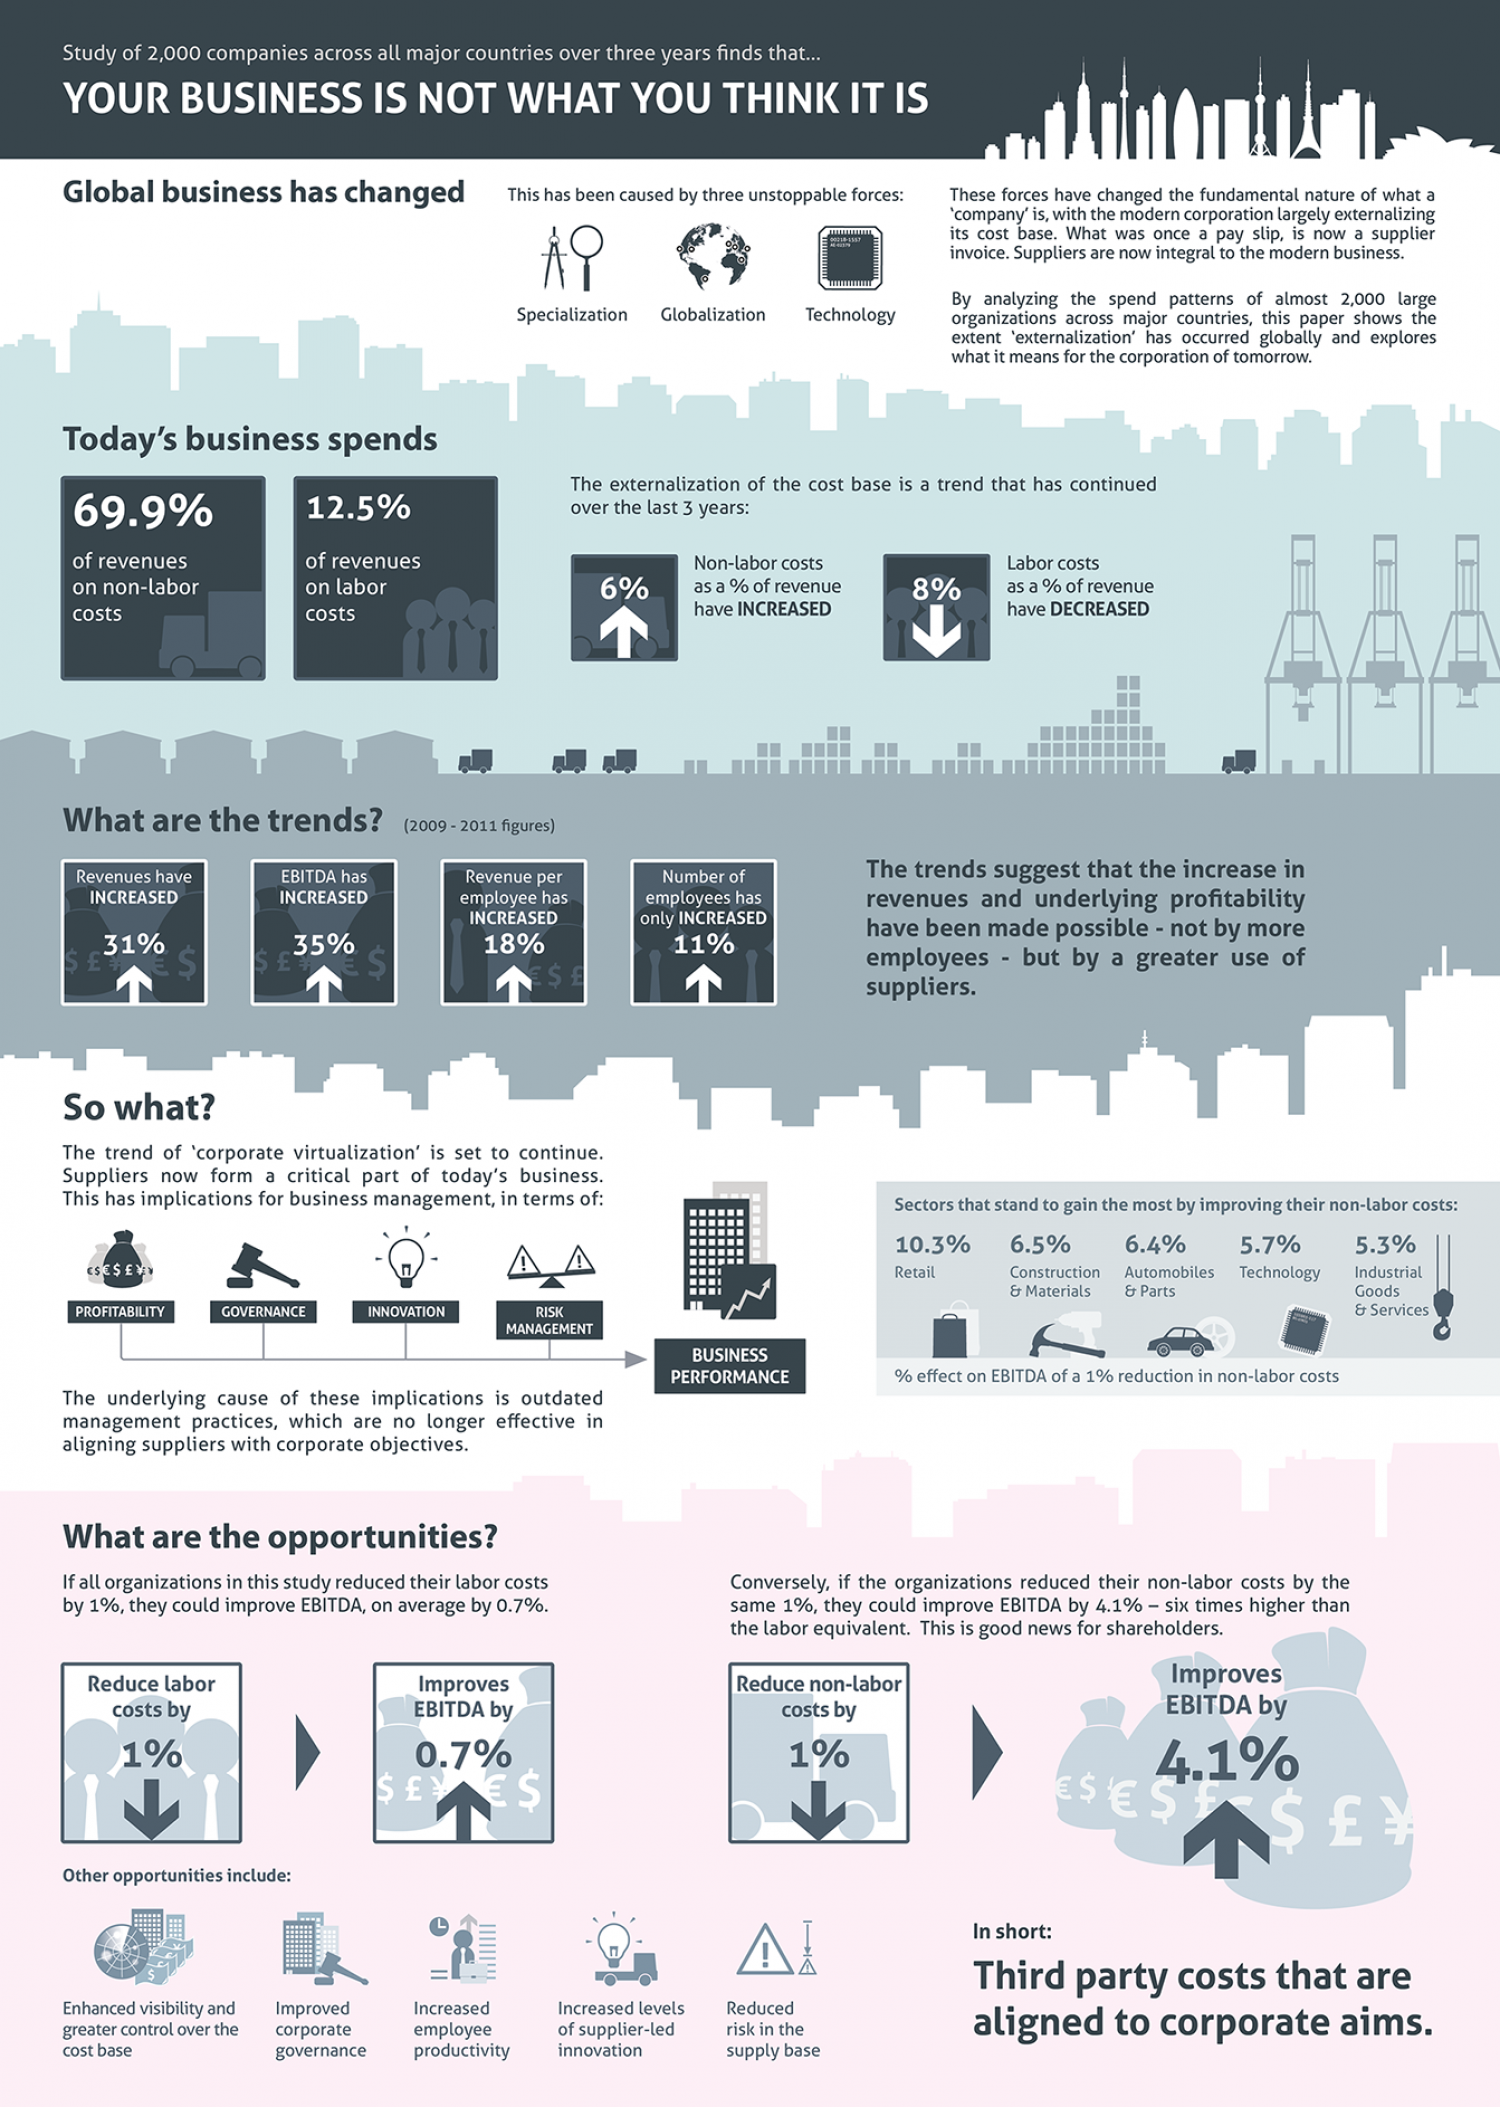 Your Business Is Not What You Think It Is Infographic